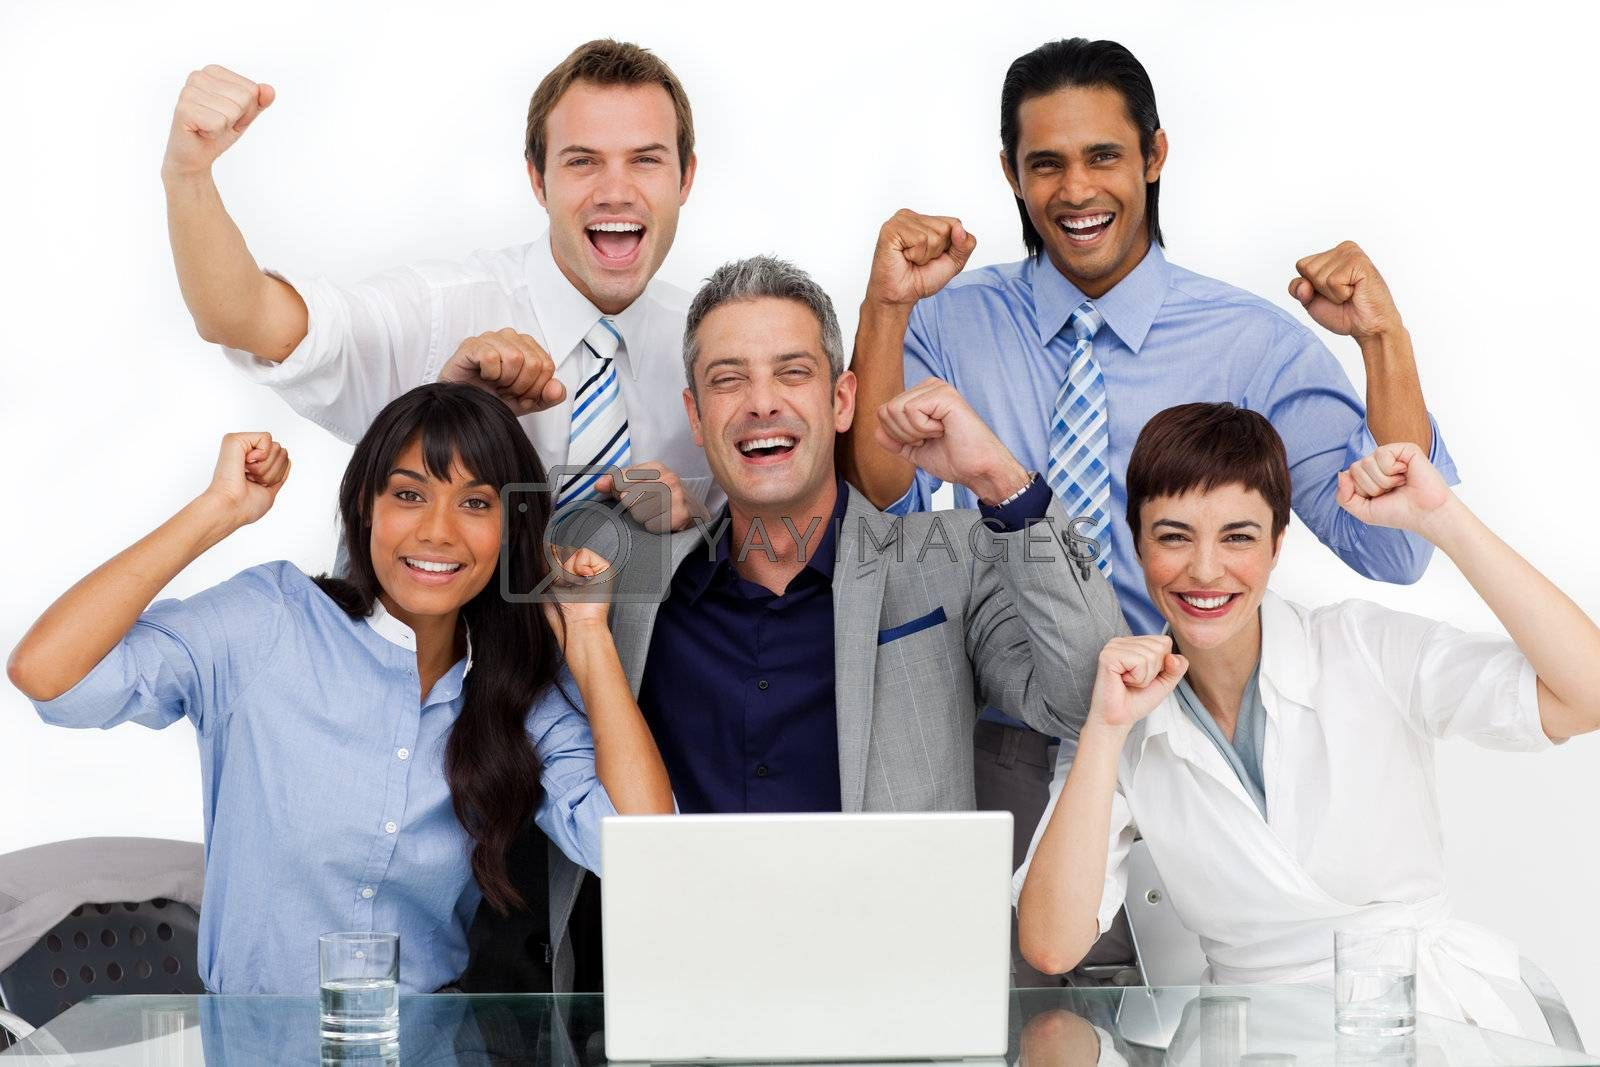 Fortunate business team punching the air in celebration in the office